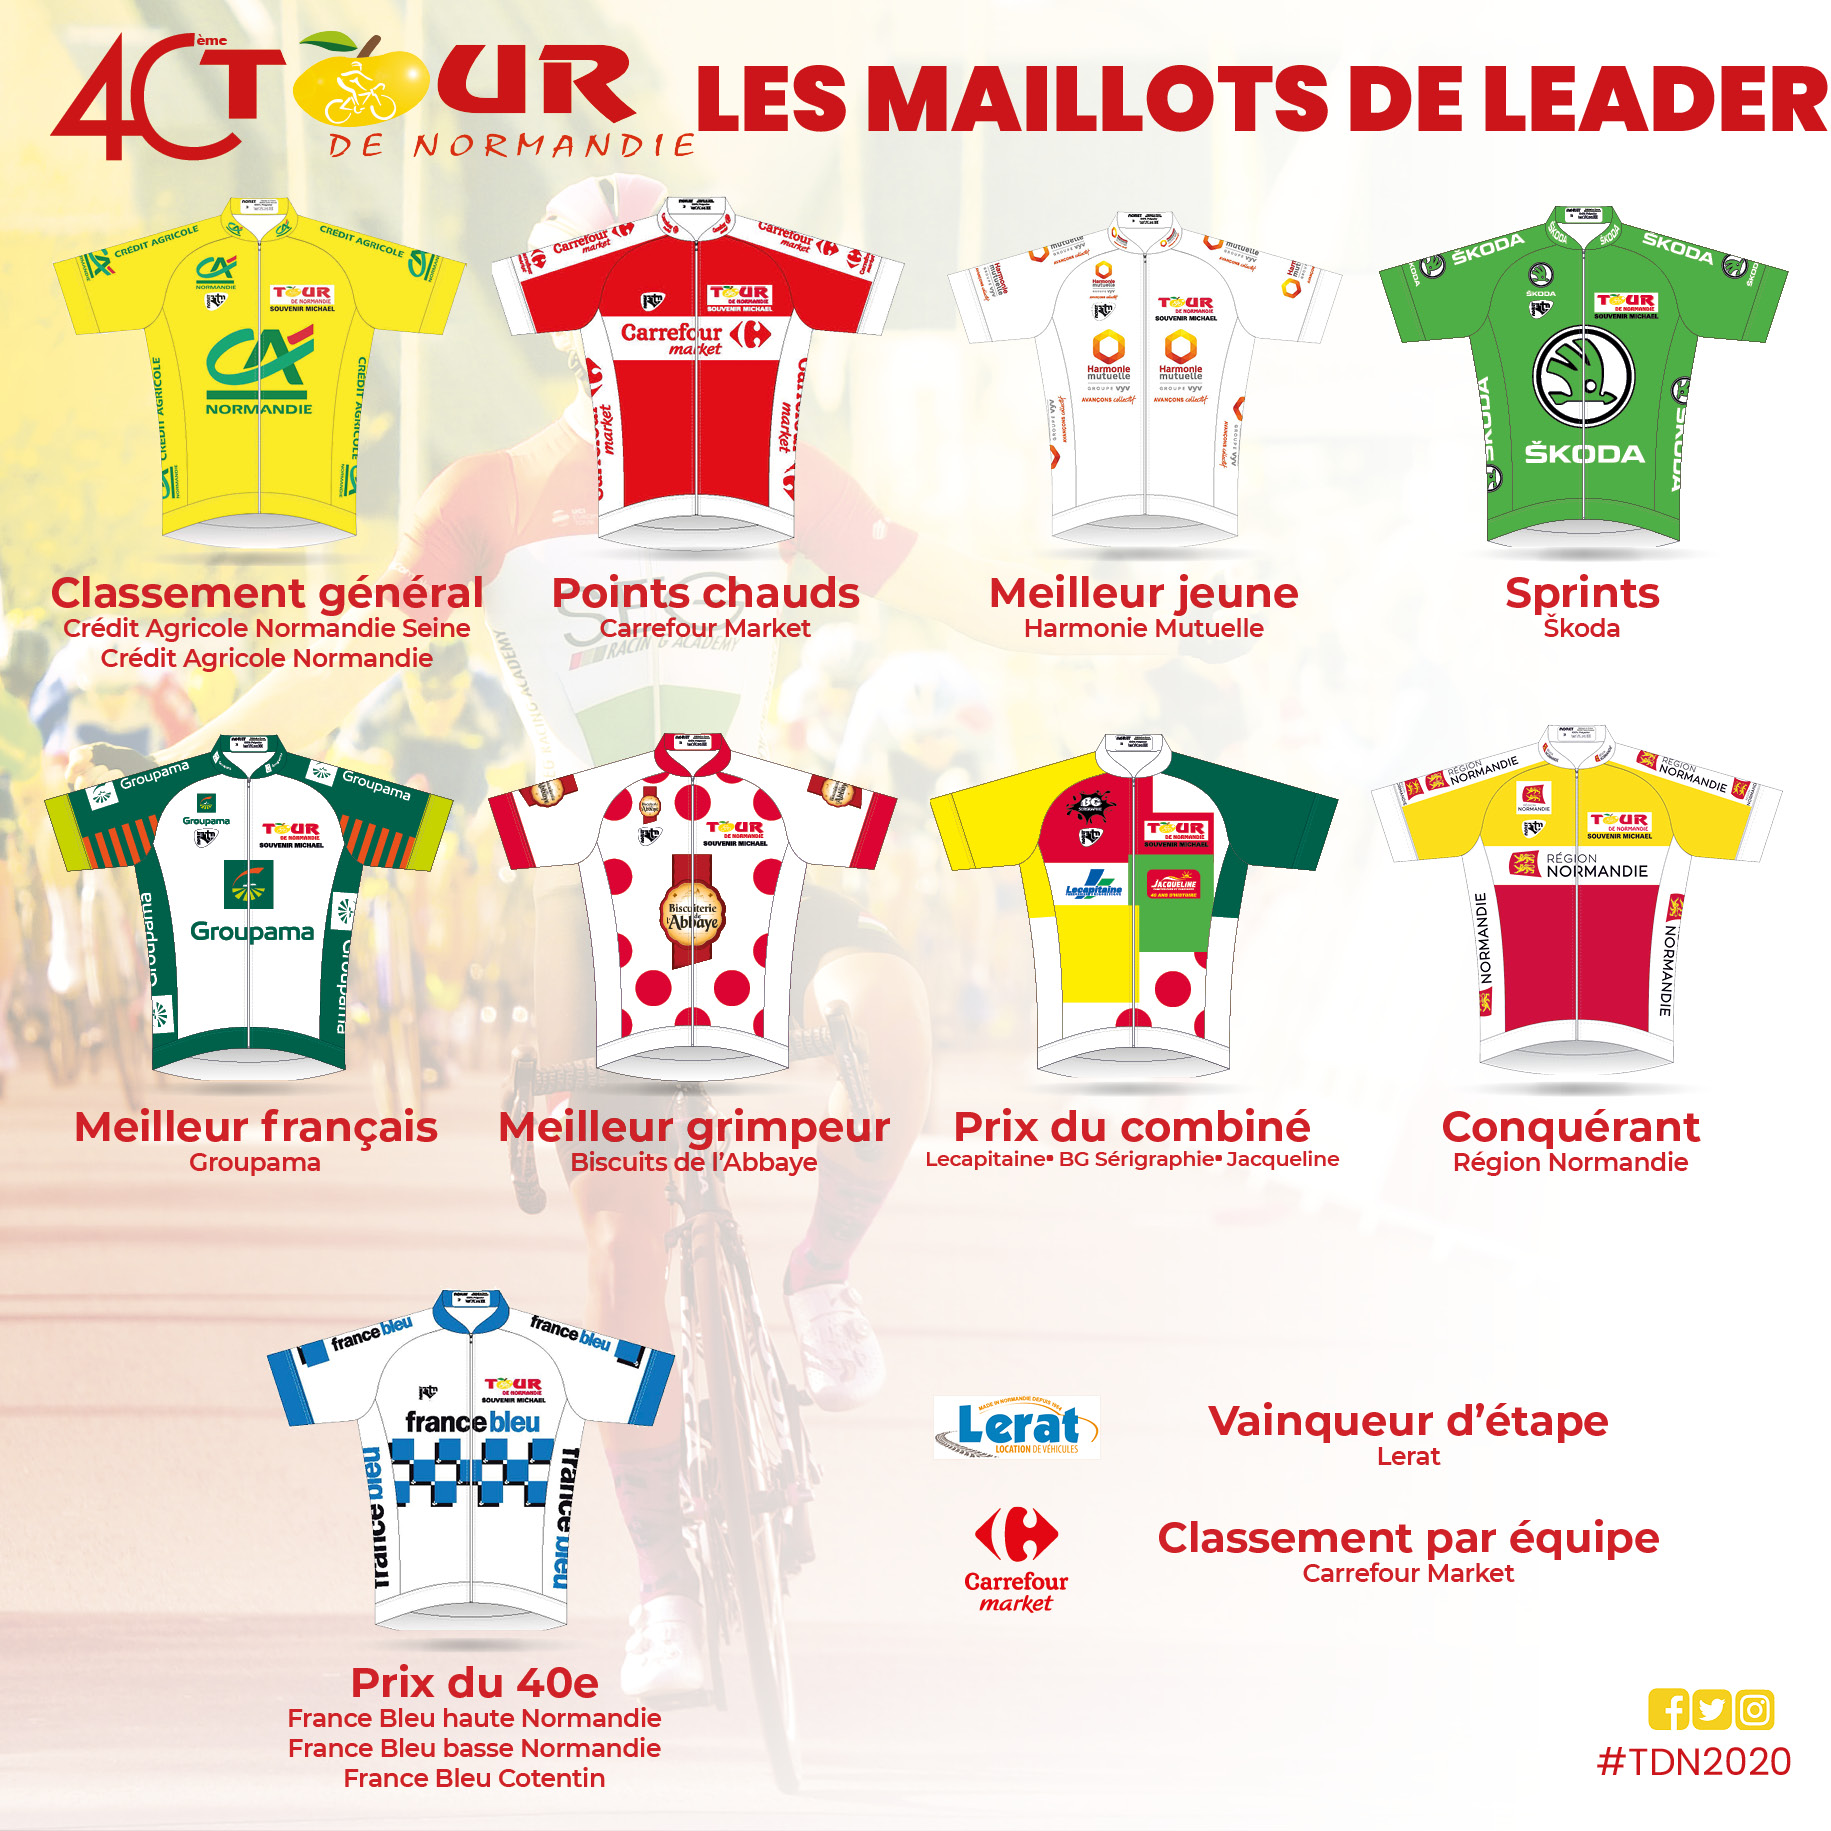 tour de normandie 2002 maillots de leader